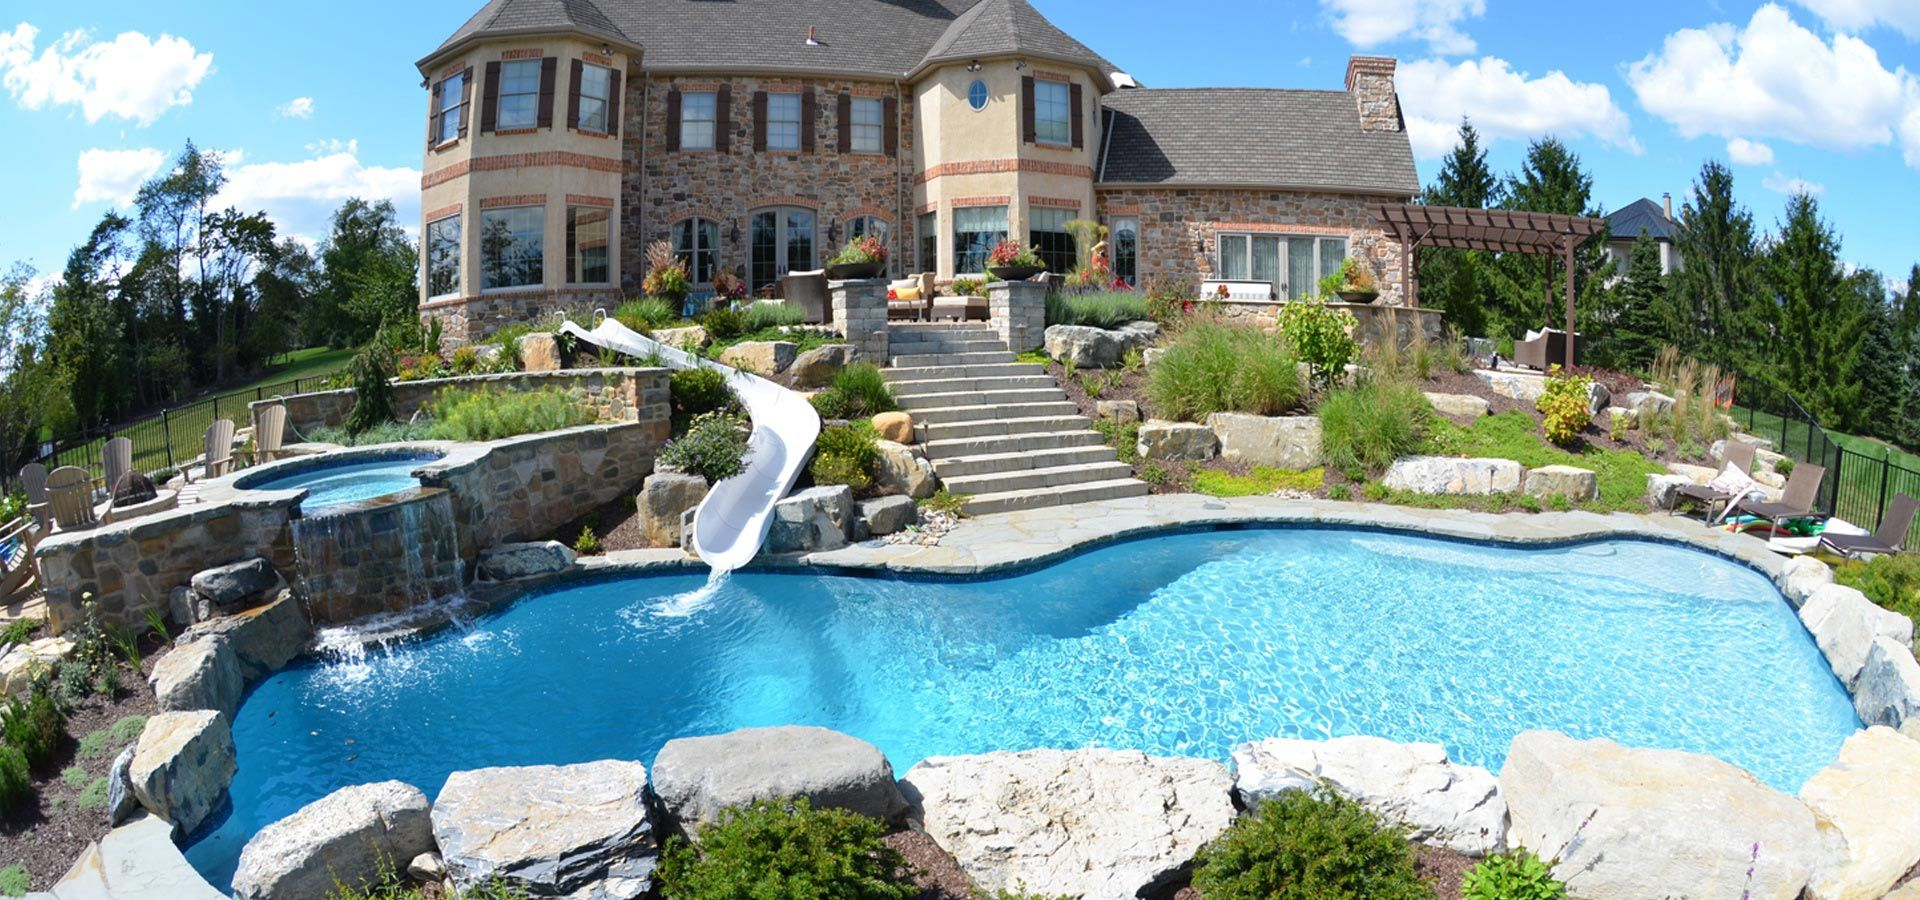 view our photo gallery of the top quality inground pools we have installed in lehigh valley pennsylvania contact us about your pool project today